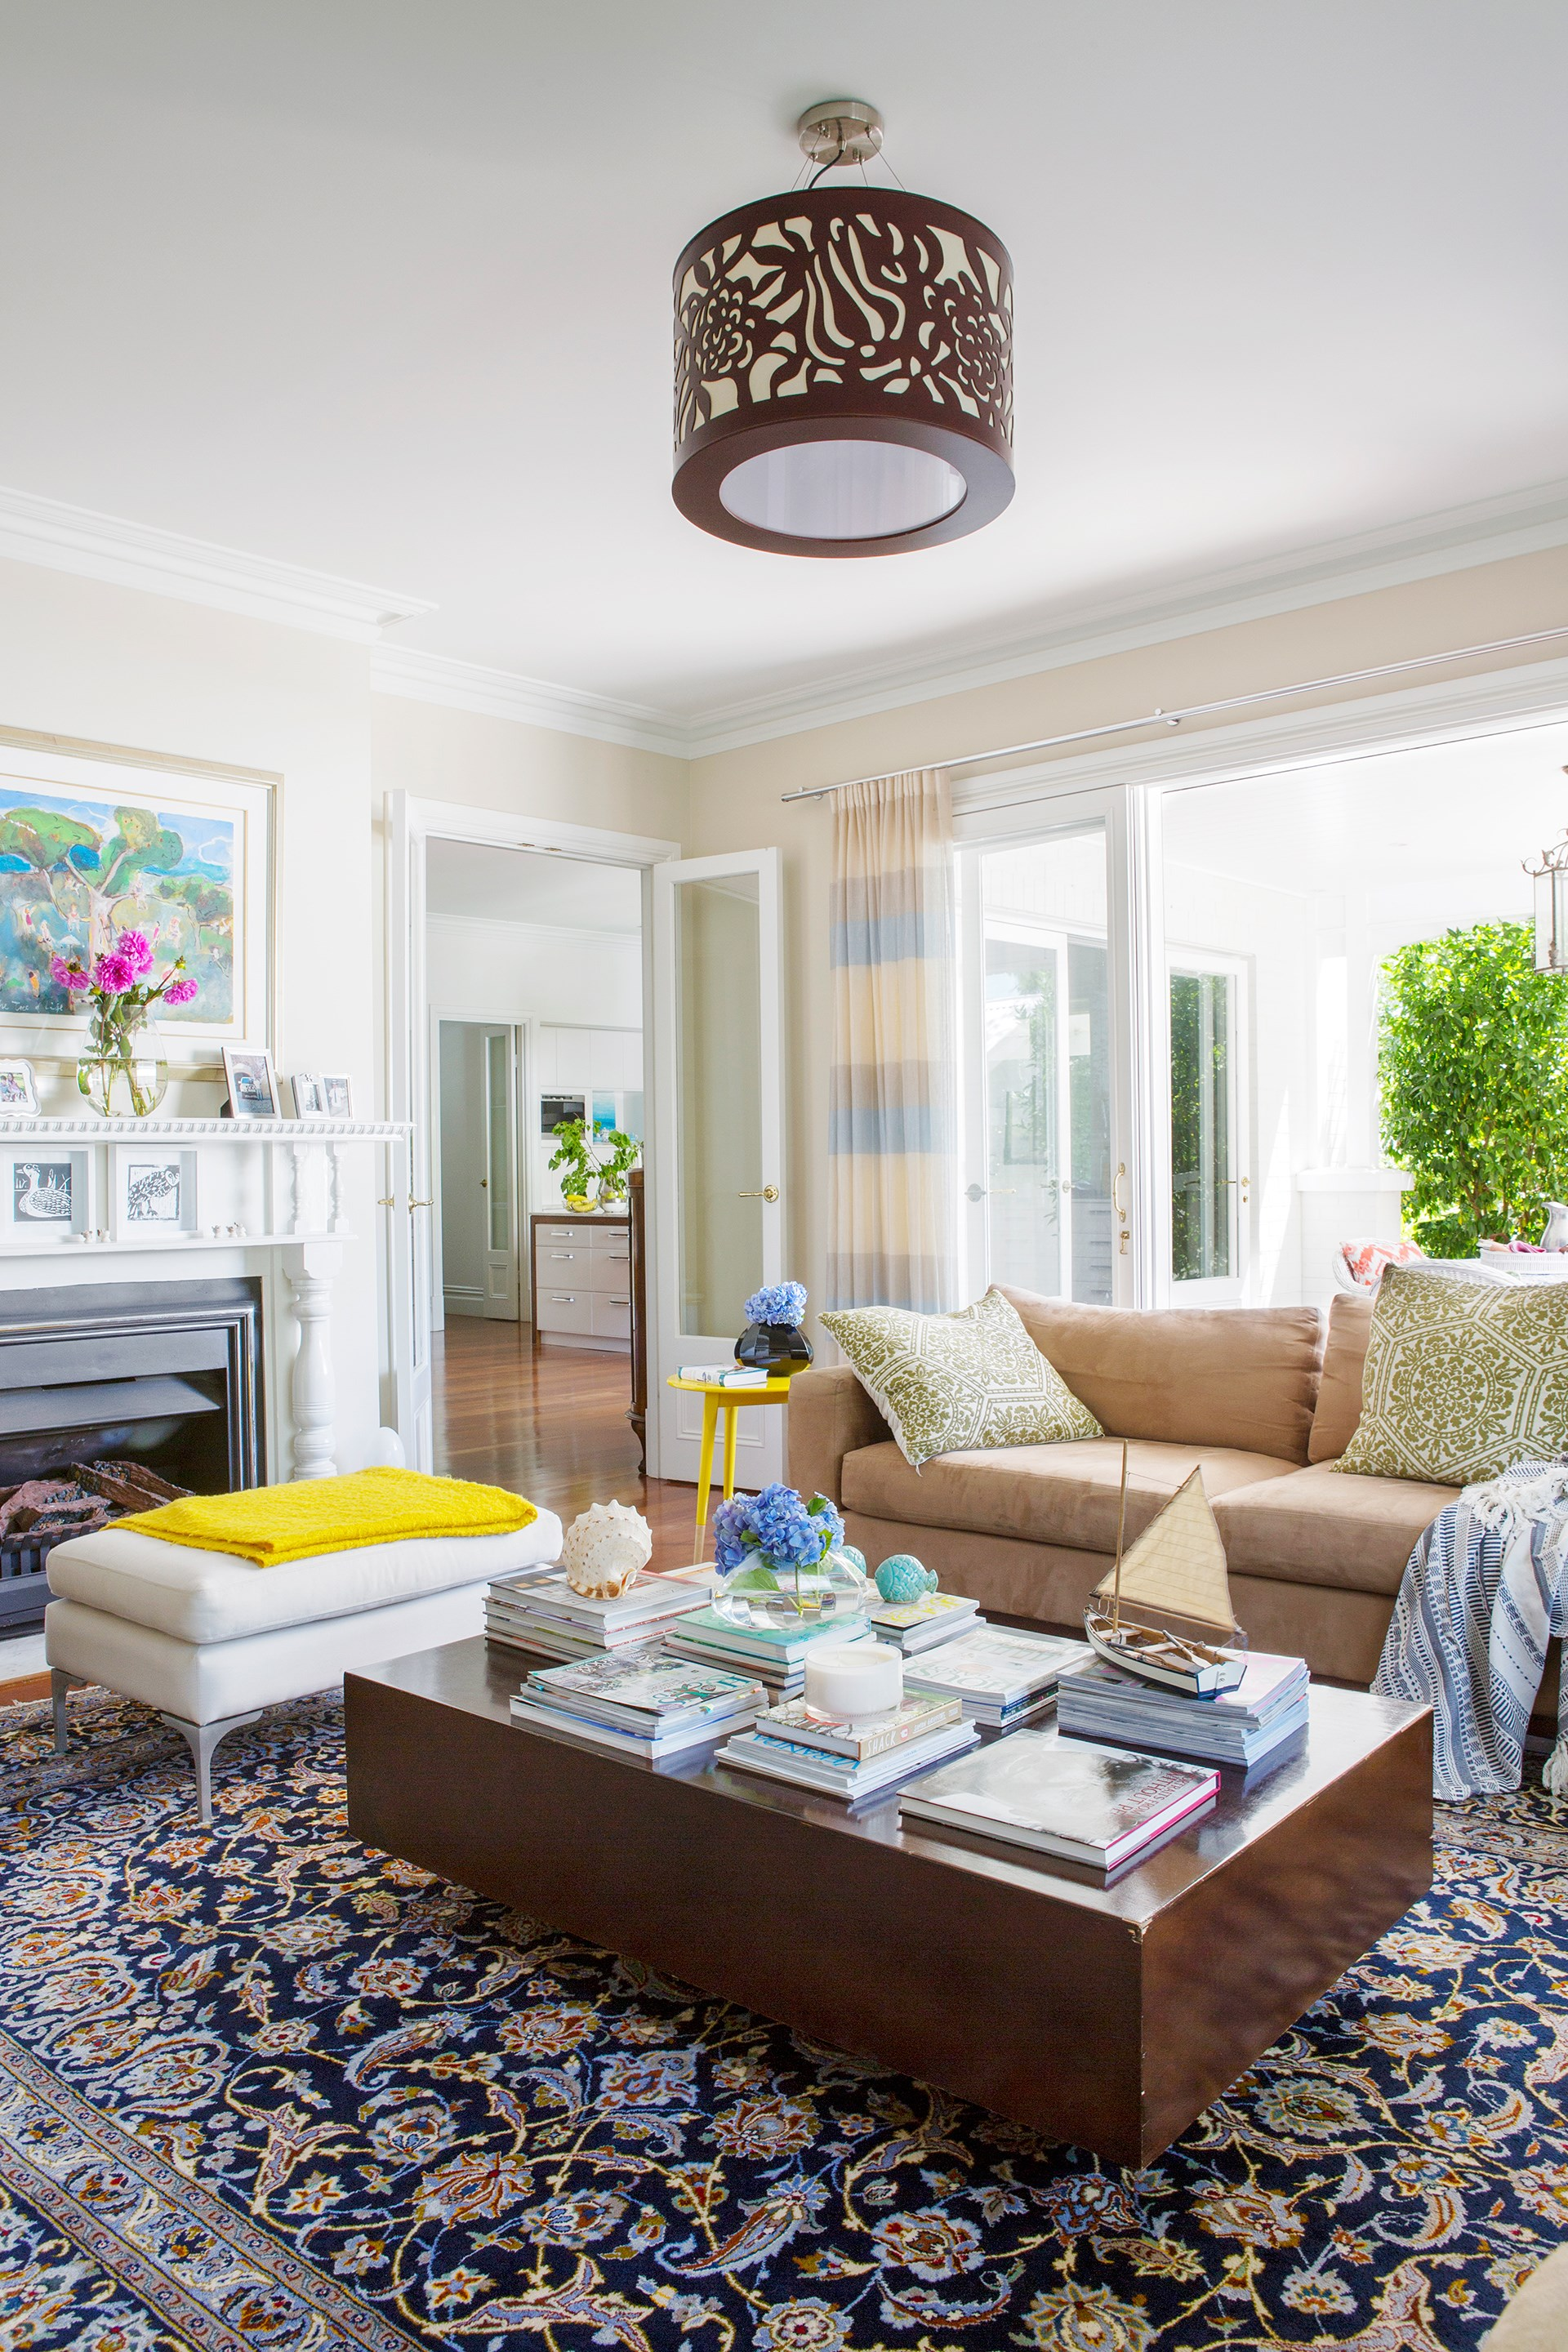 "A large Persian rug sets the scene for lounging in comfort in this [warm and welcoming heritage home](http://www.homestolove.com.au/gallery-rundown-perth-property-gains-a-new-life-1874|target=""_blank""